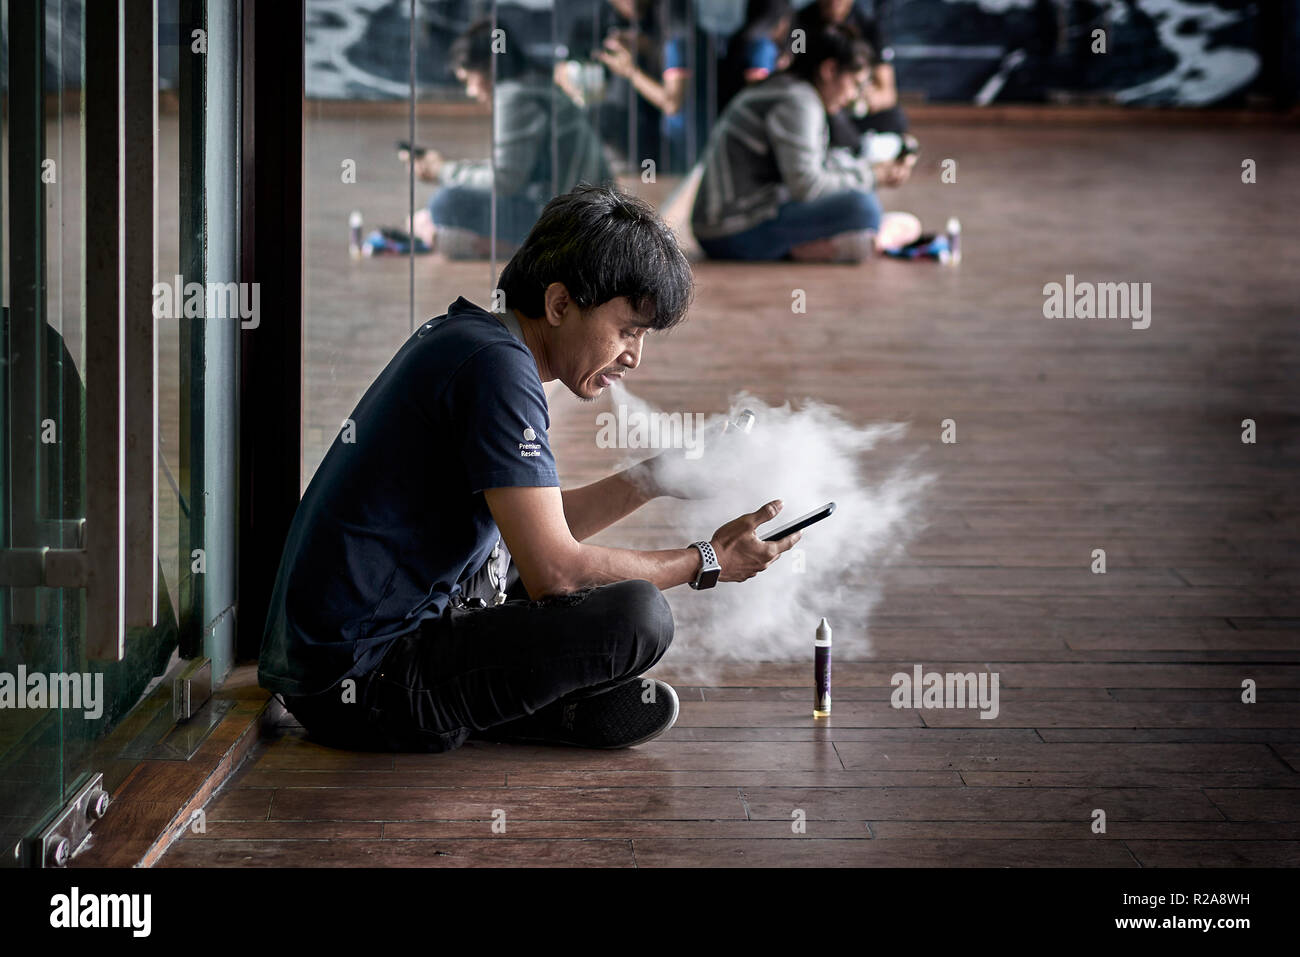 Vaping. Man smoking an e cigarette and blowing a large cloud of smoke Stock Photo